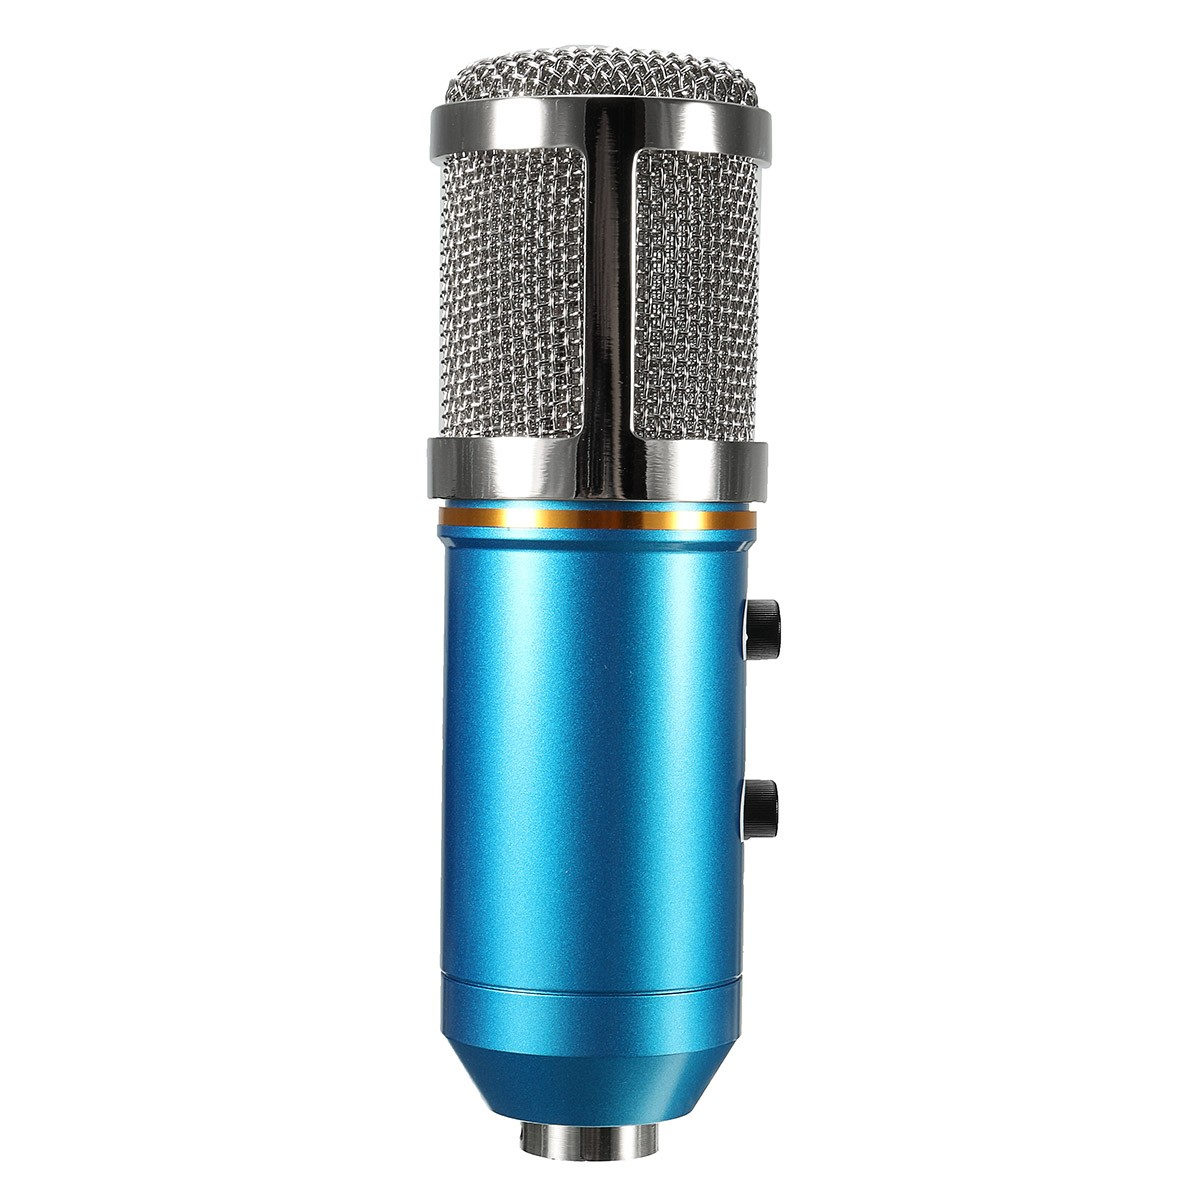 MK-F200TL Audio USB Condenser Microphone Sound Recording Vocal Microphone Mic Stand Mount